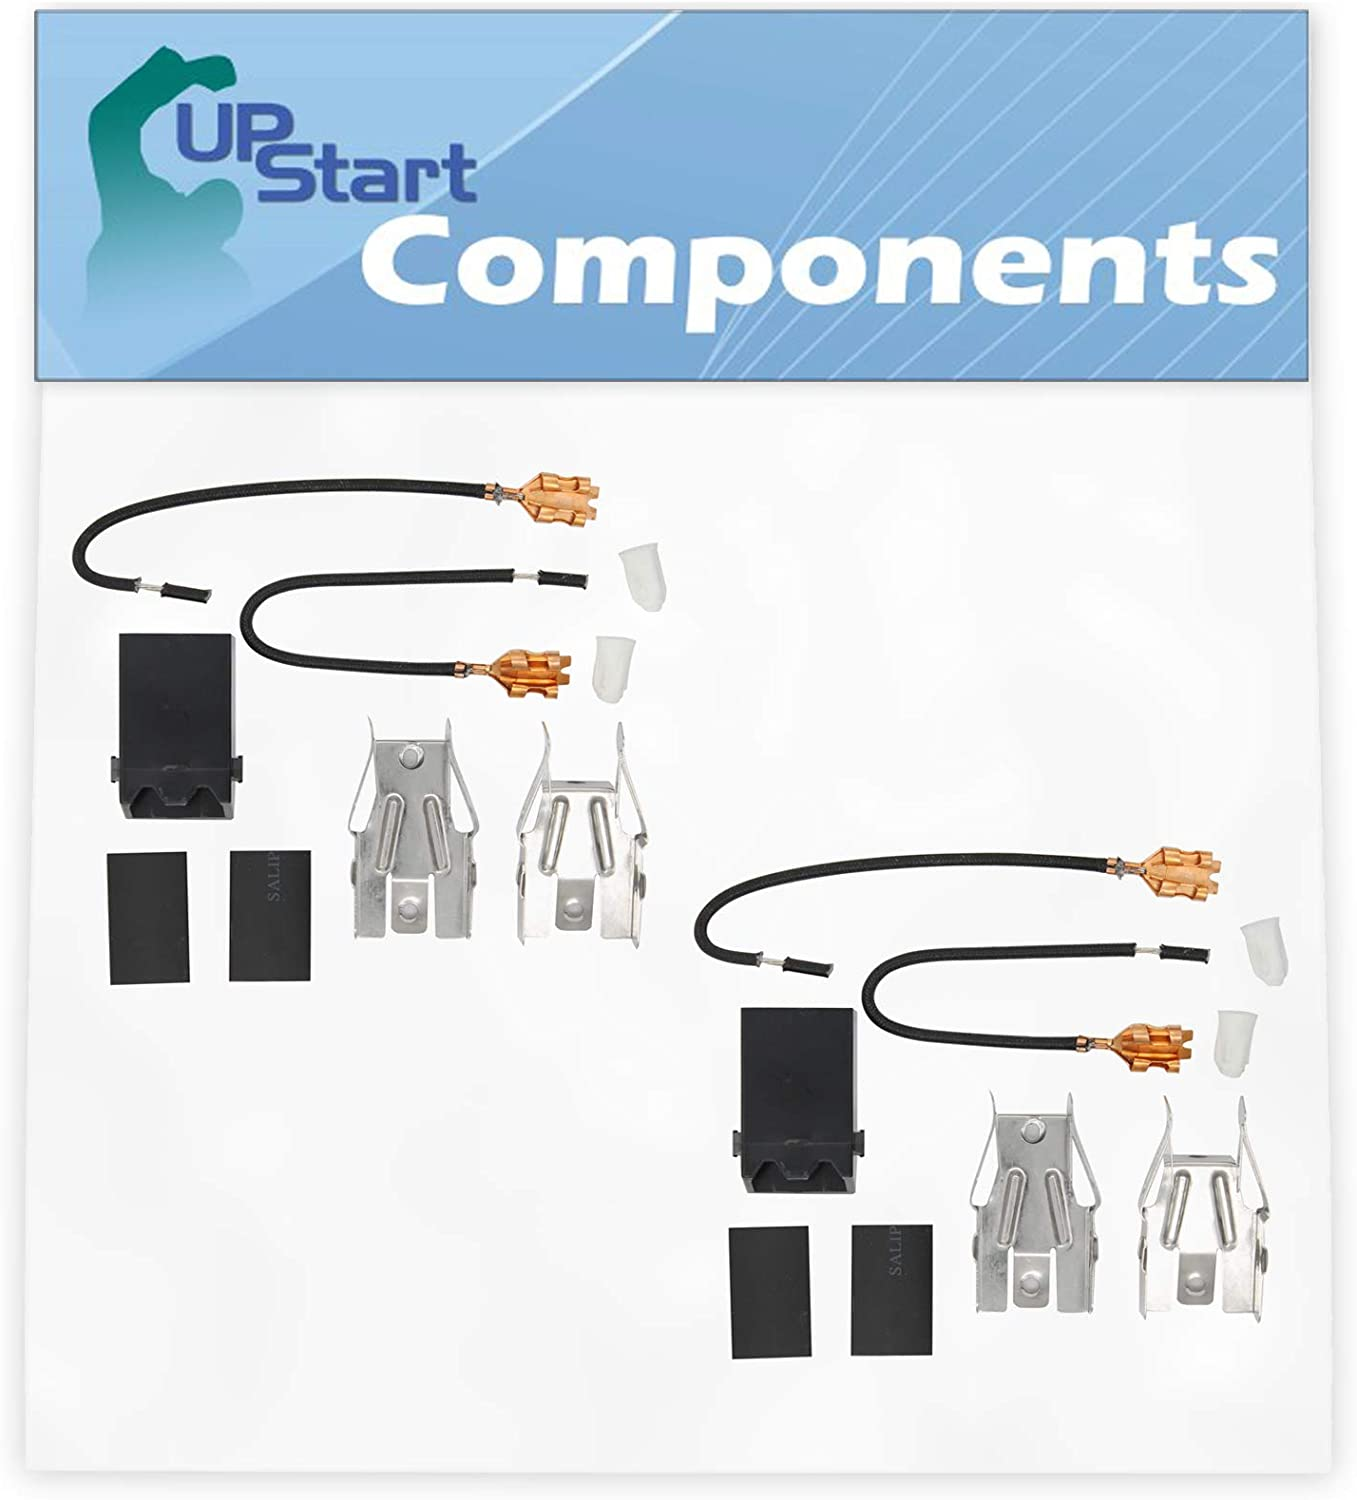 2-Pack 330031 Top Burner Receptacle Kit Replacement for Whirlpool RC8200XKW0 Range/Cooktop/Oven - Compatible with 330031 Range Burner Receptacle Kit - UpStart Components Brand